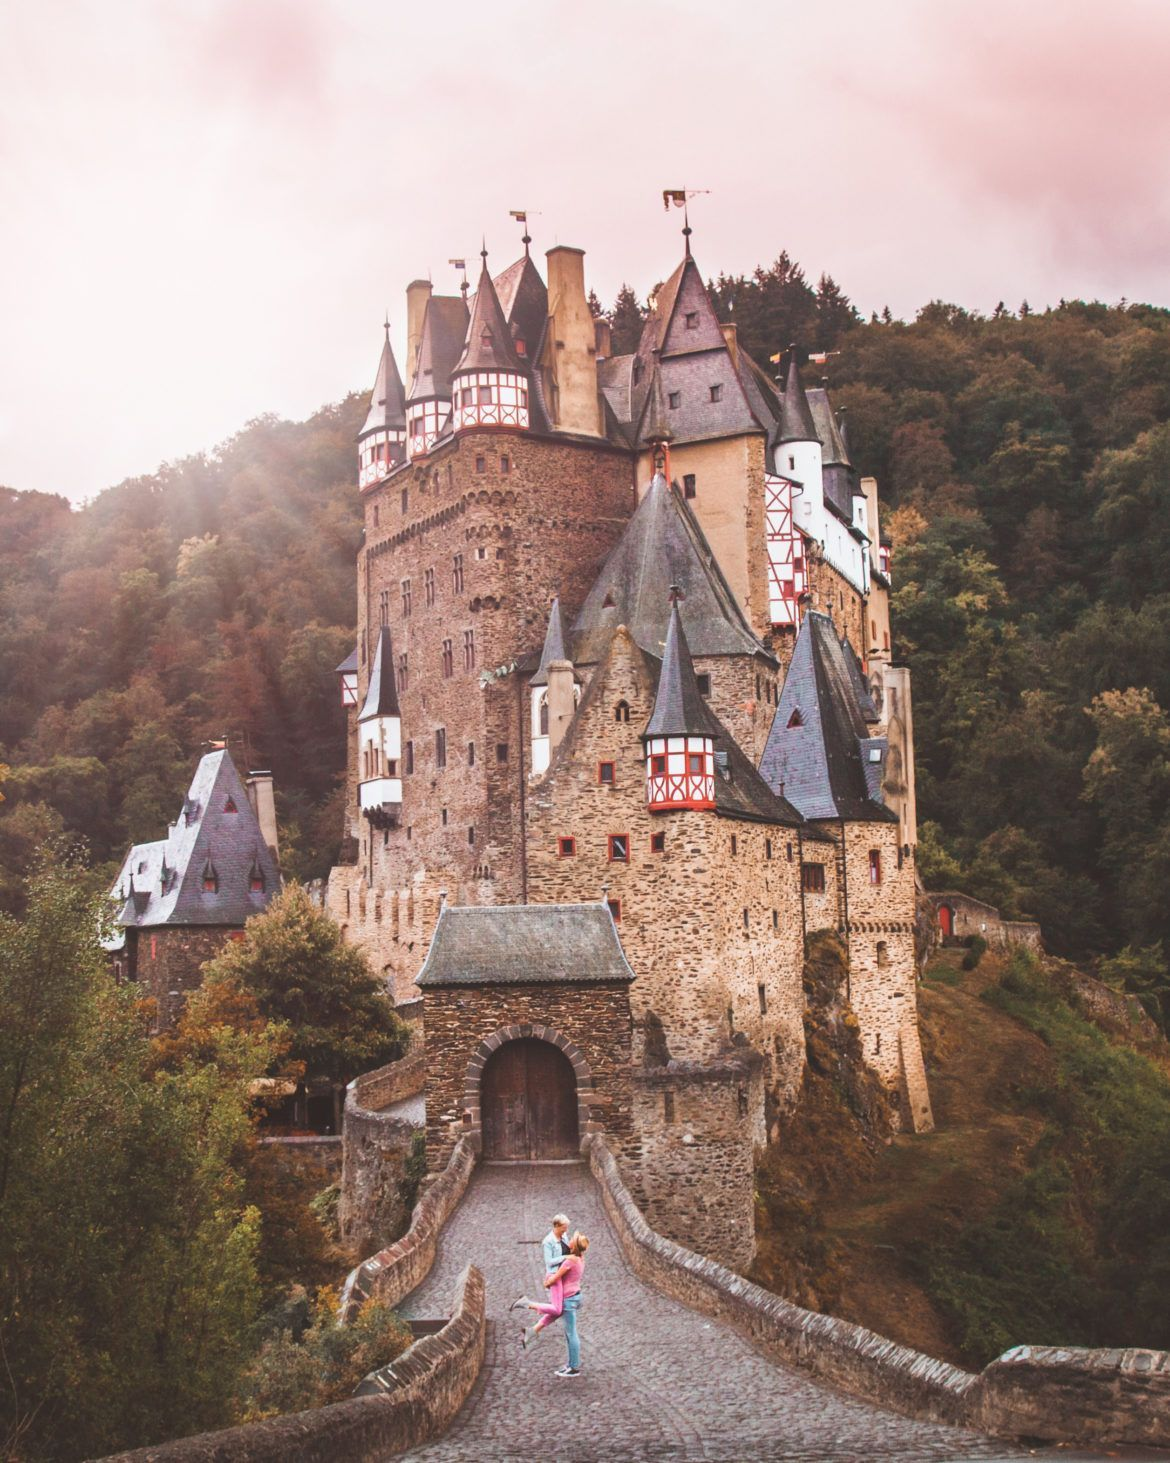 Burg Eltz One Of The Most Beautiful Fairytale Castles In Germany That You Need To Visit Germany In 2020 Fairytale Castle Germany Castles Beautiful Castles